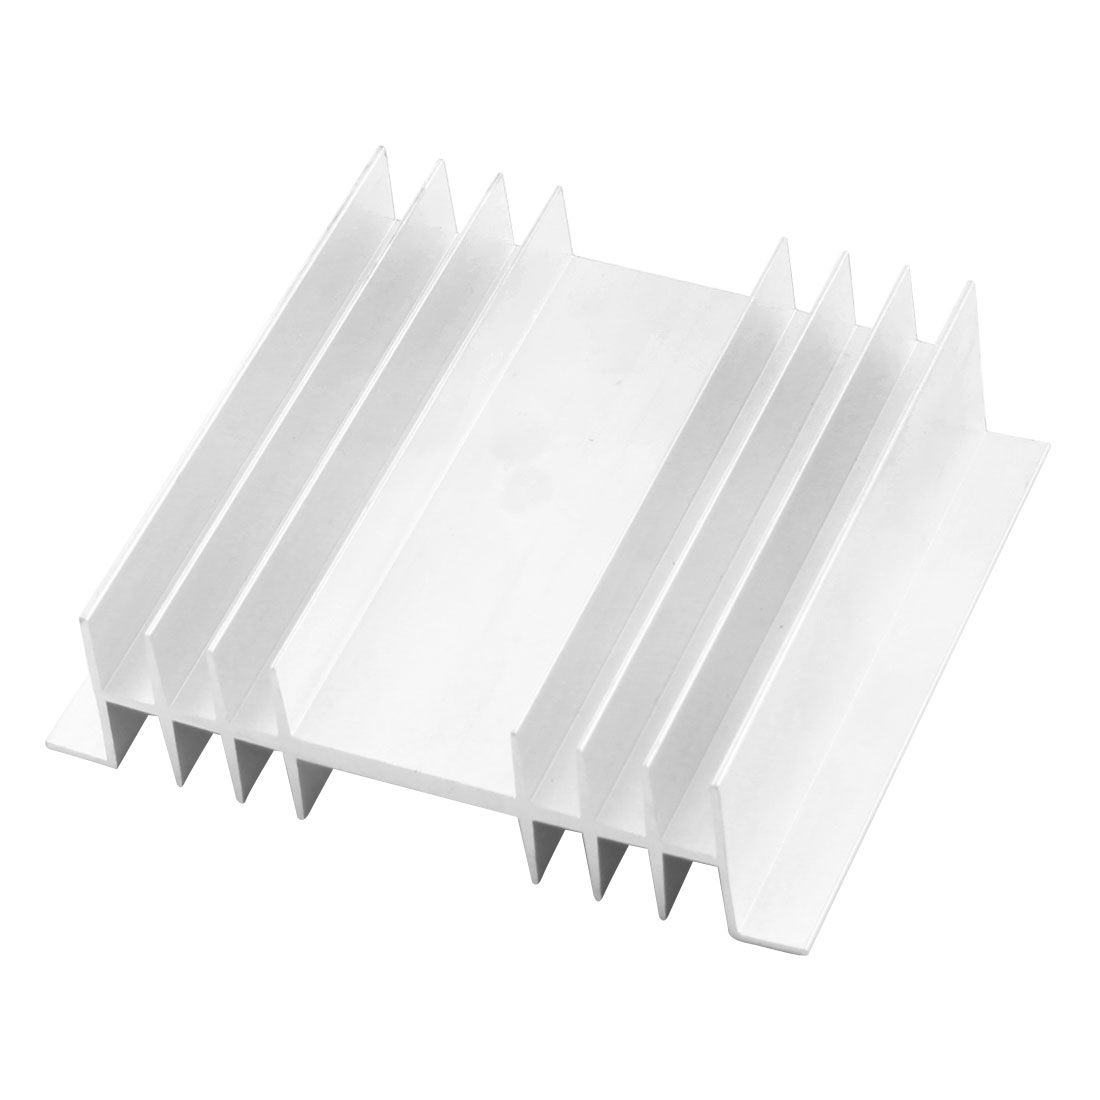 Electronic Component Transistor Silver Tone Aluminium Heatsink Heat Spreader Cooling Fin 116mmx100mmx32mm